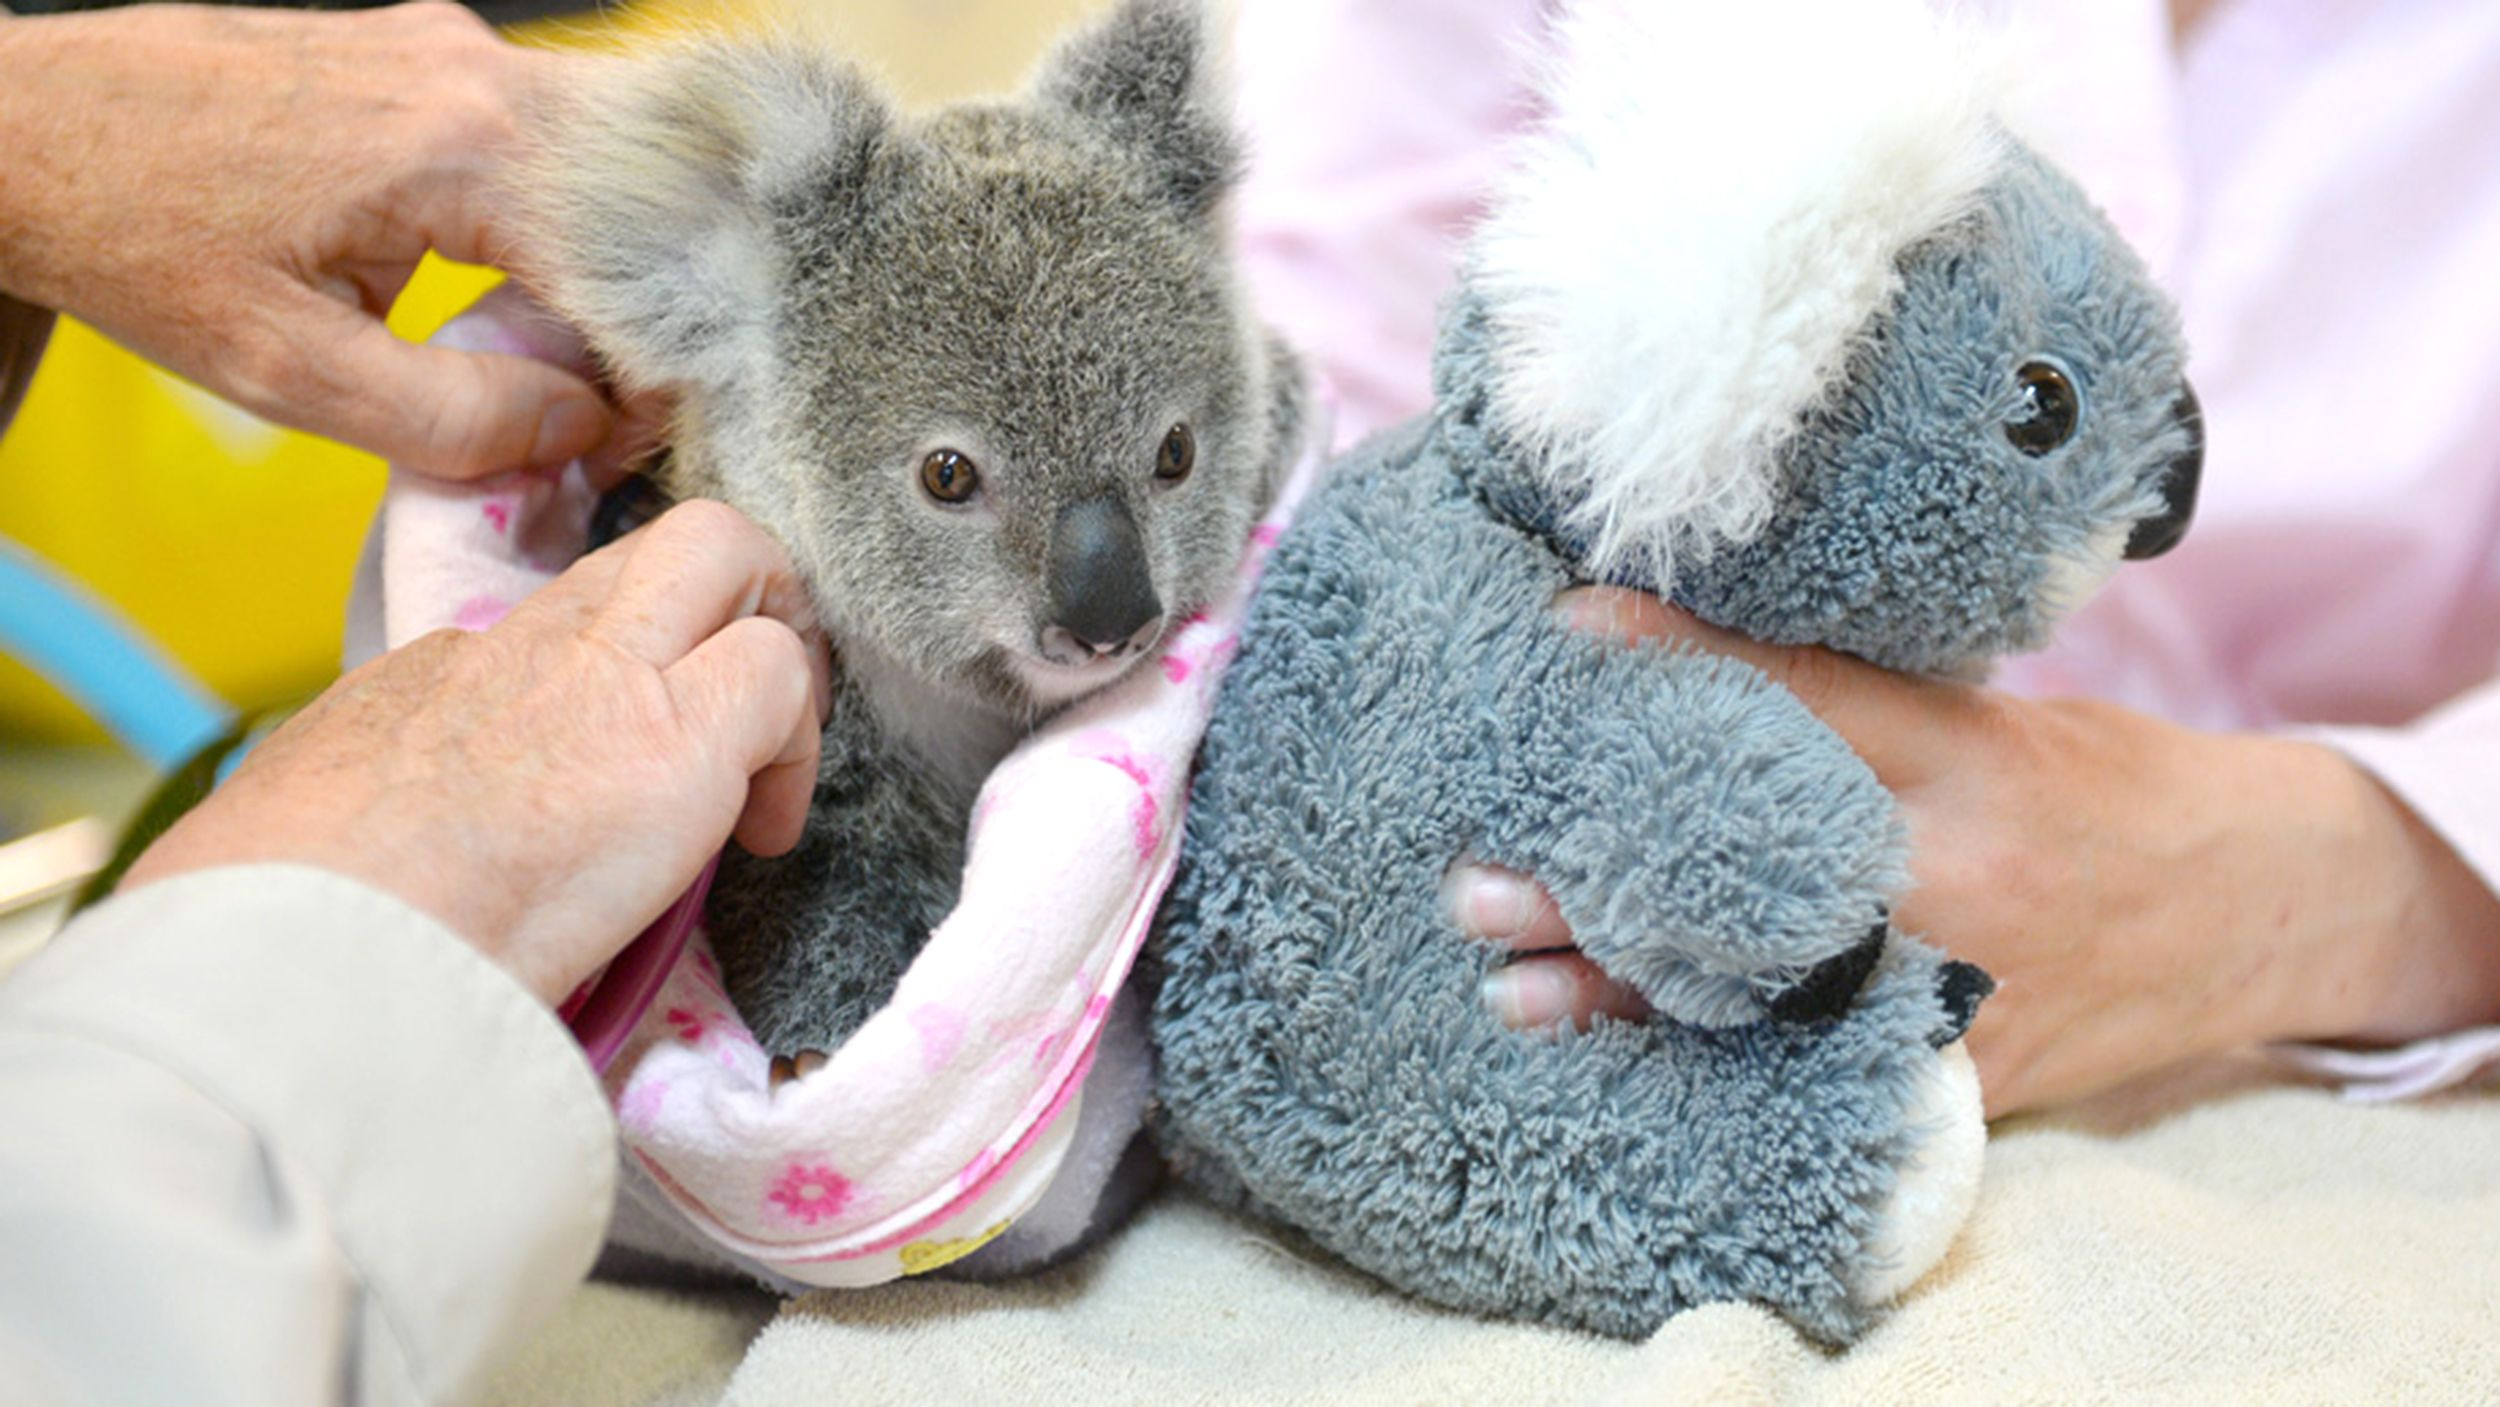 Orphaned Baby Koala Cuddles Stuffed Animal After Losing Mom Baby Koala Koala Cuddling